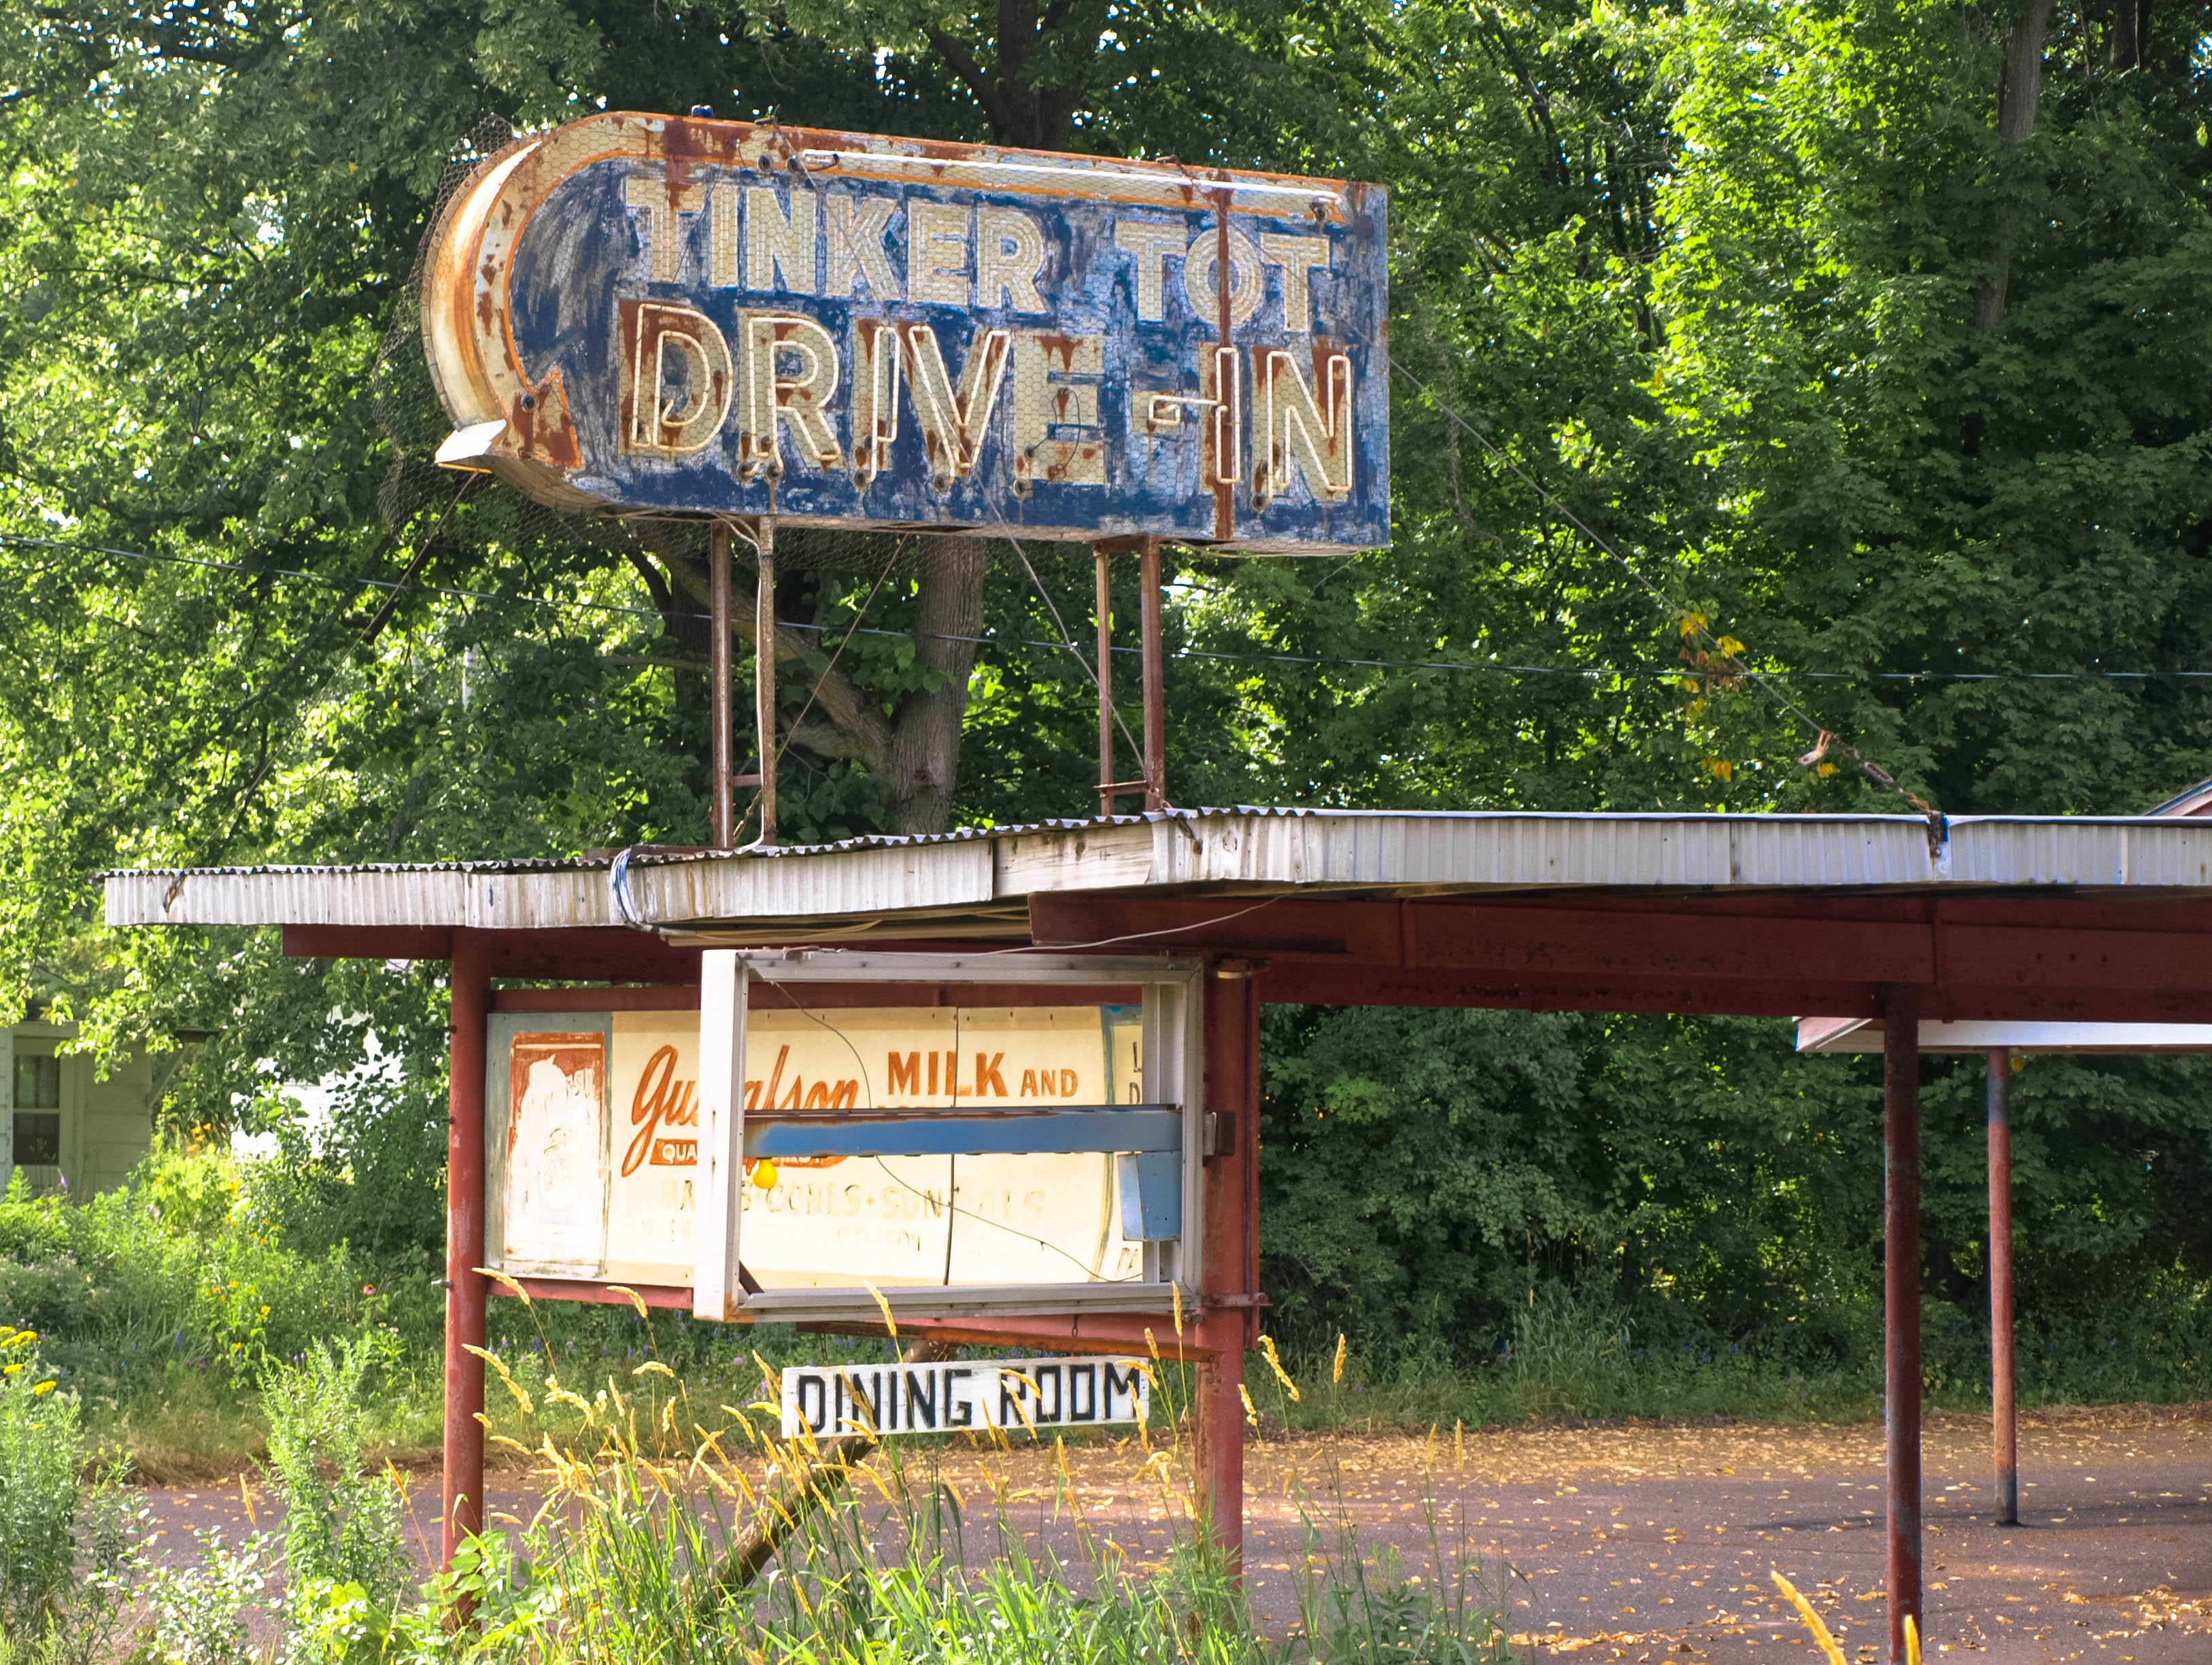 Tinker Tot Drive-In - Ladysmith, Wisconsin U.S.A. - August 2, 2013